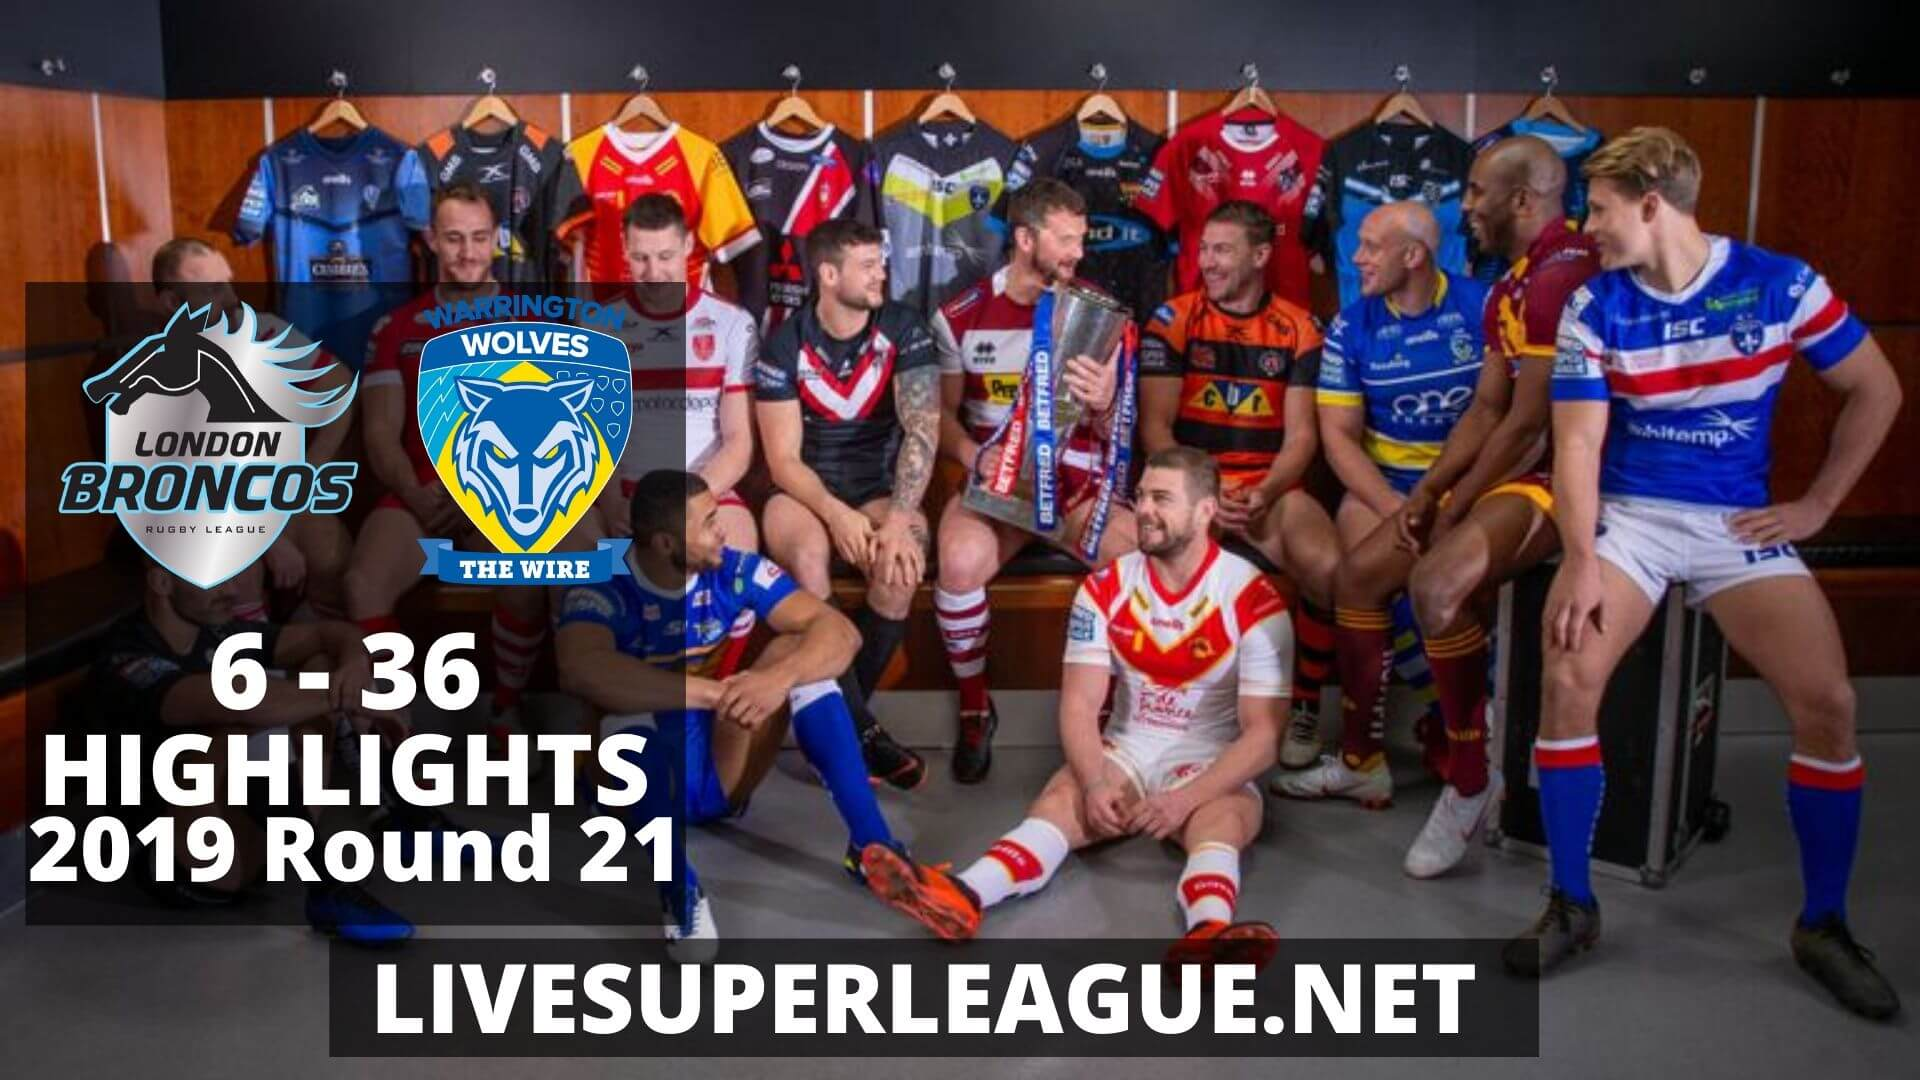 London Broncos Vs Warrington Wolves Highlights 2019 Round 21